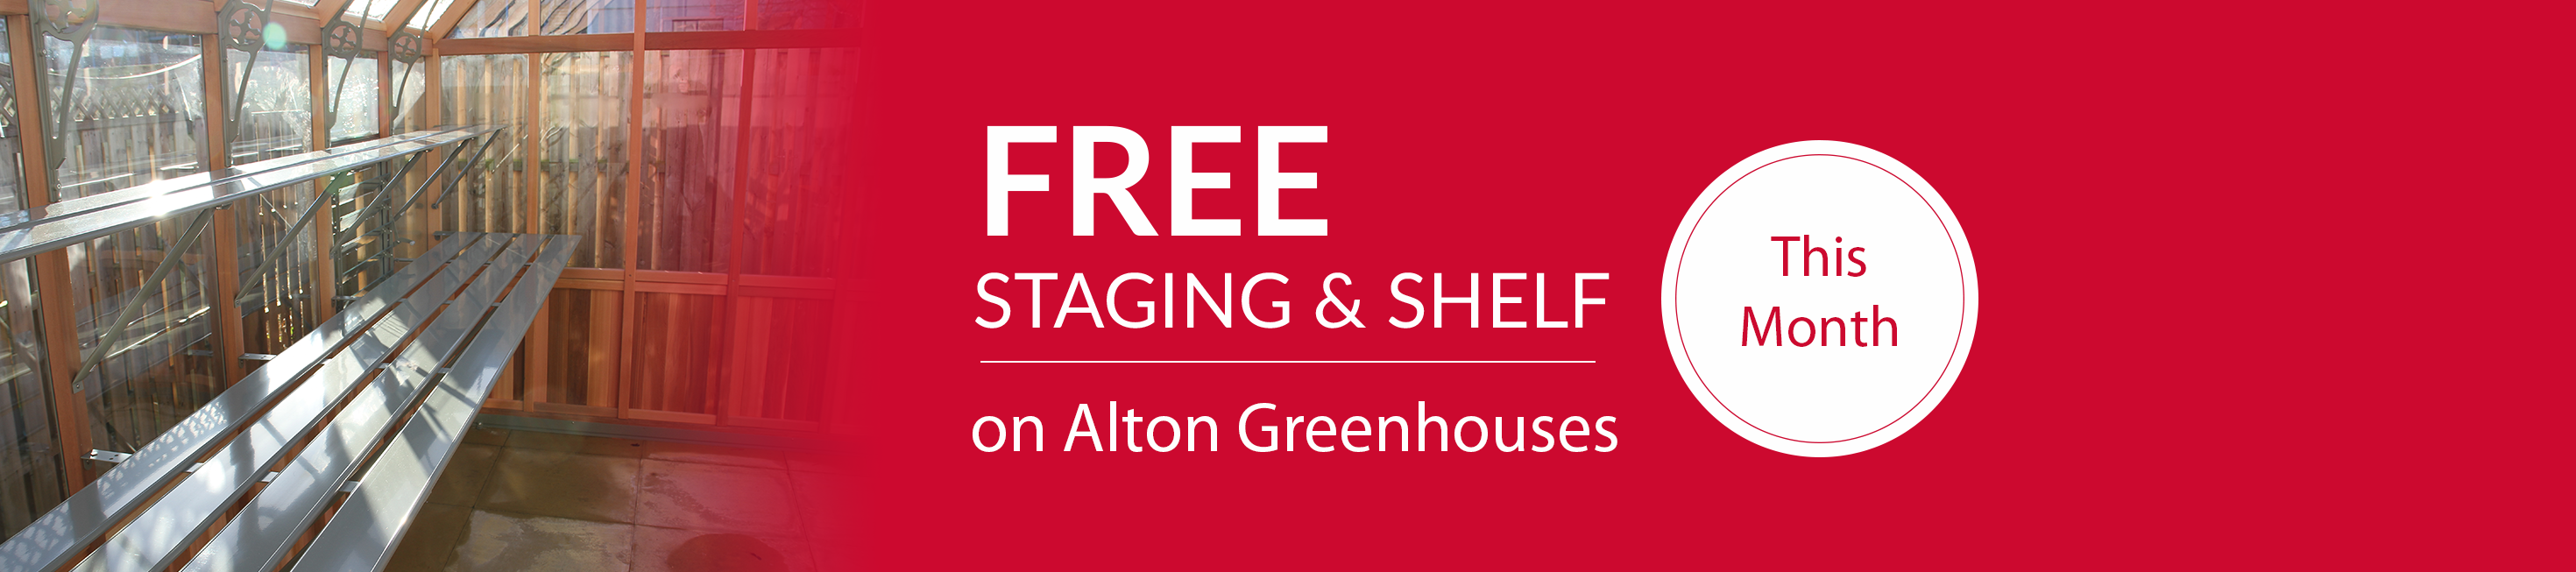 Free Staging